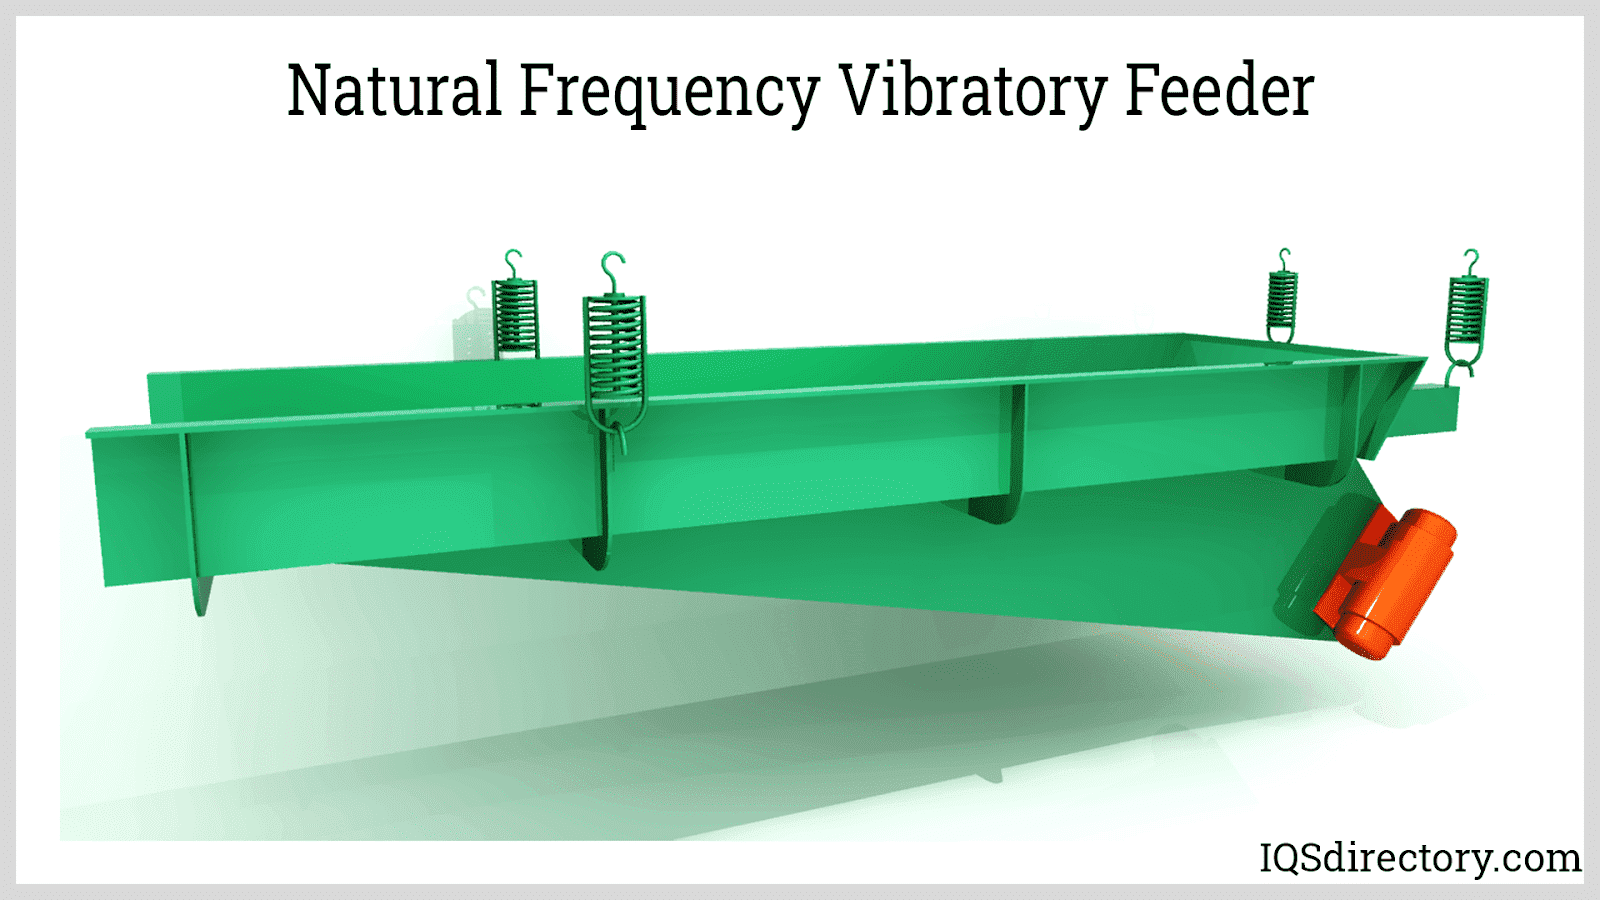 Natural Frequency Vibratory Feeder